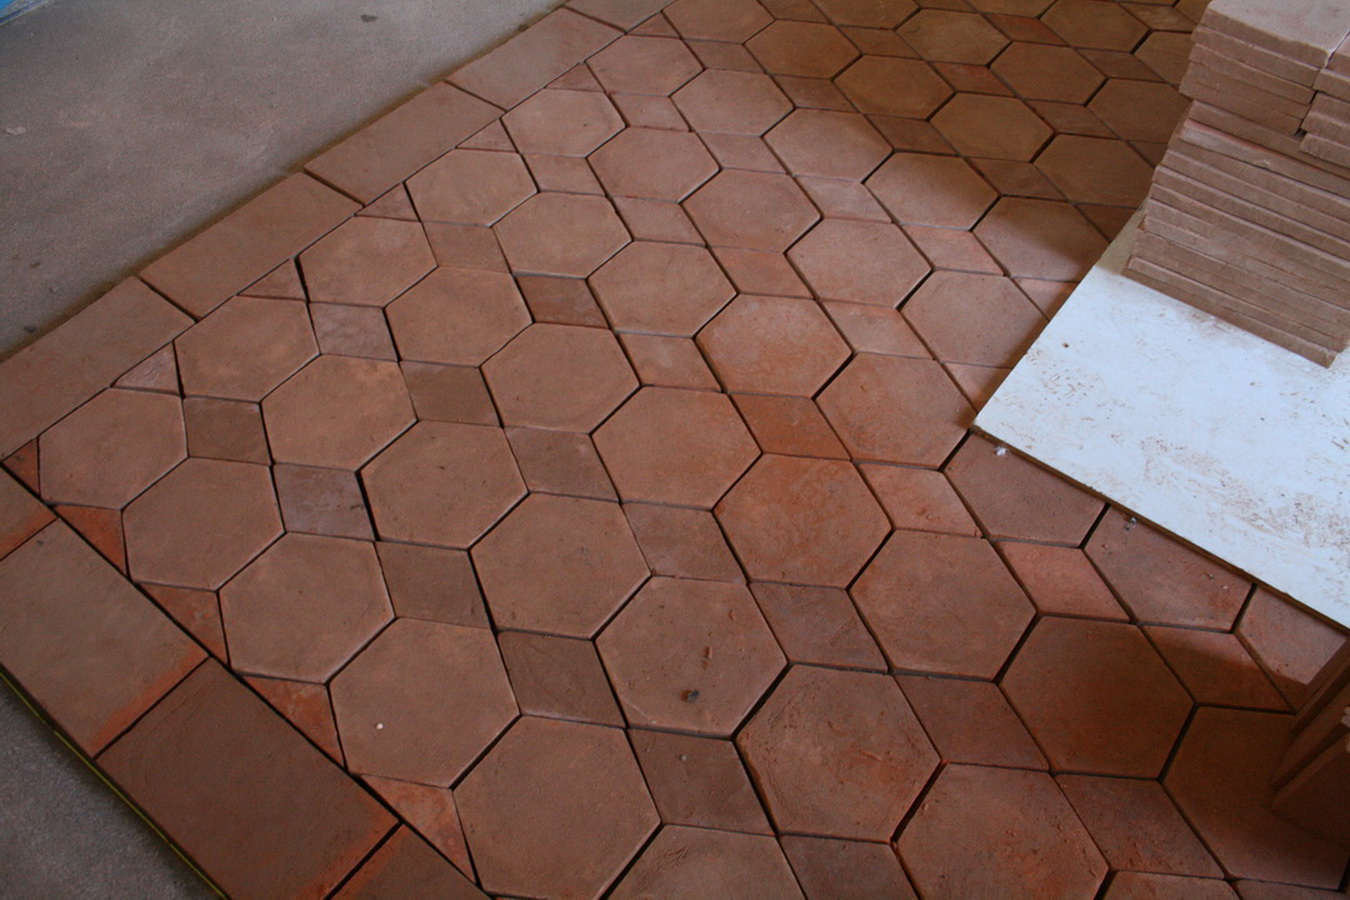 Sale terracotta tiles italy the classic is the terracotta tiles that we used to see in old buildings houses towns churches etc in spite of the centuries always has the same dailygadgetfo Choice Image